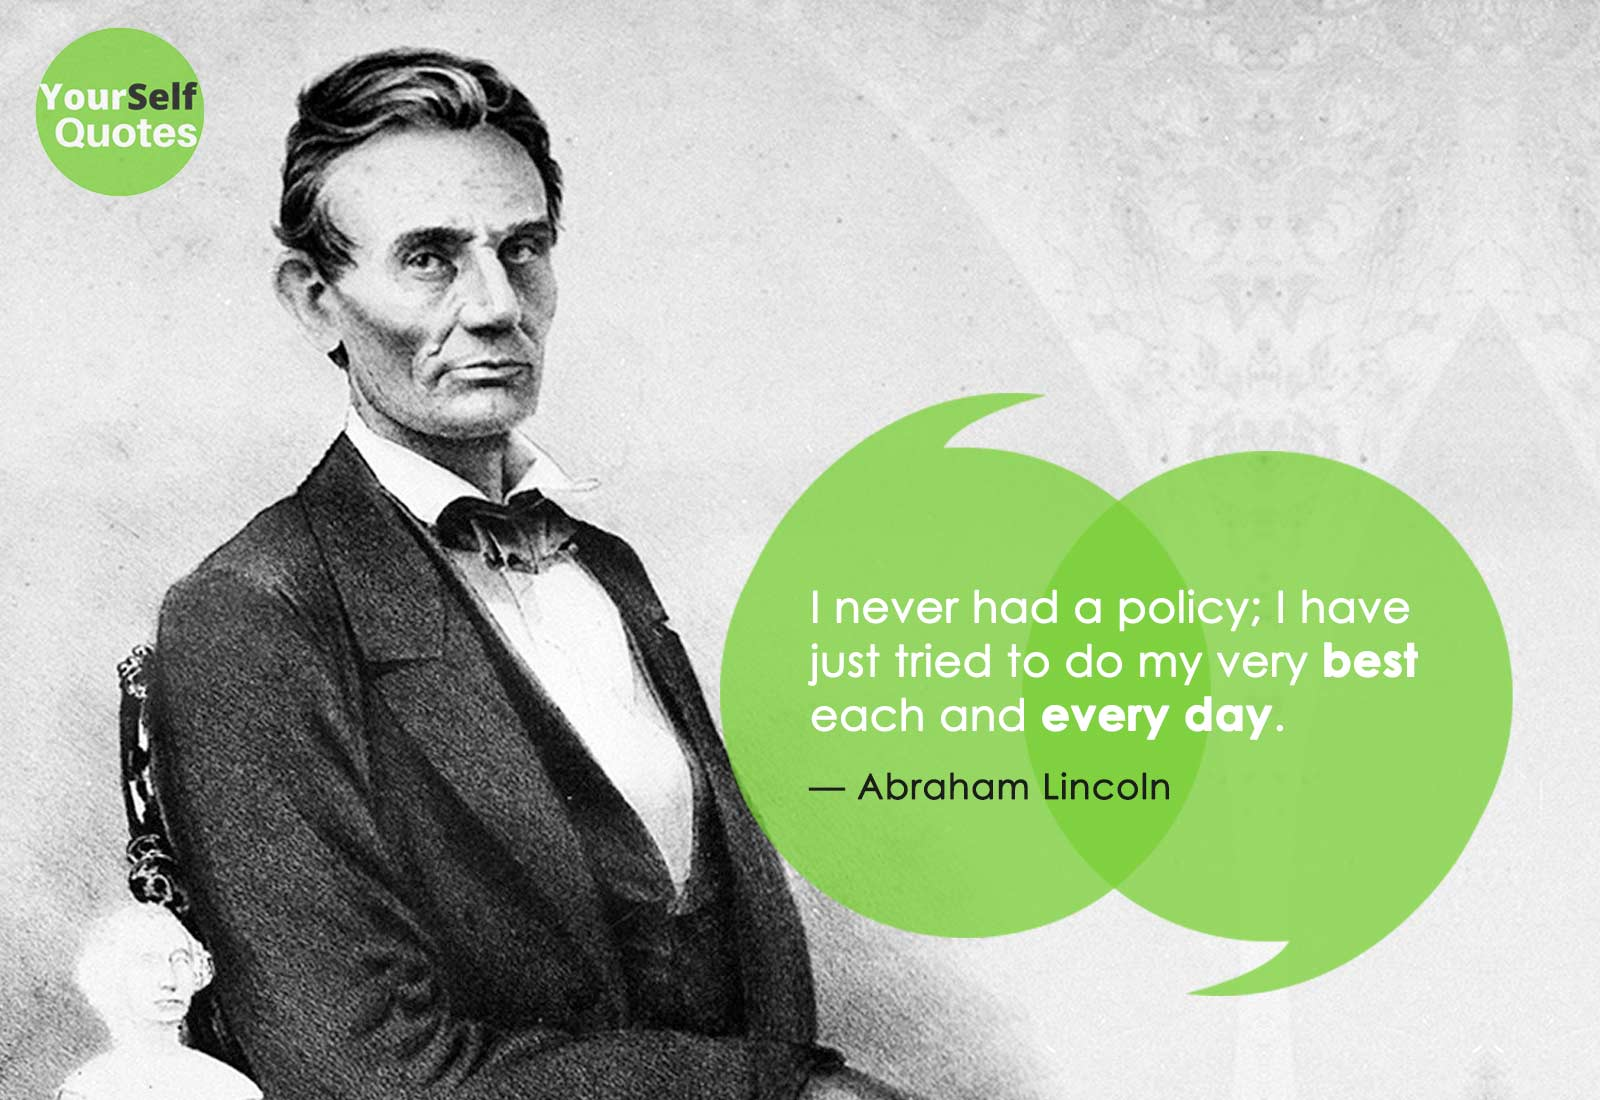 Quotes on Education by Abraham Lincoln